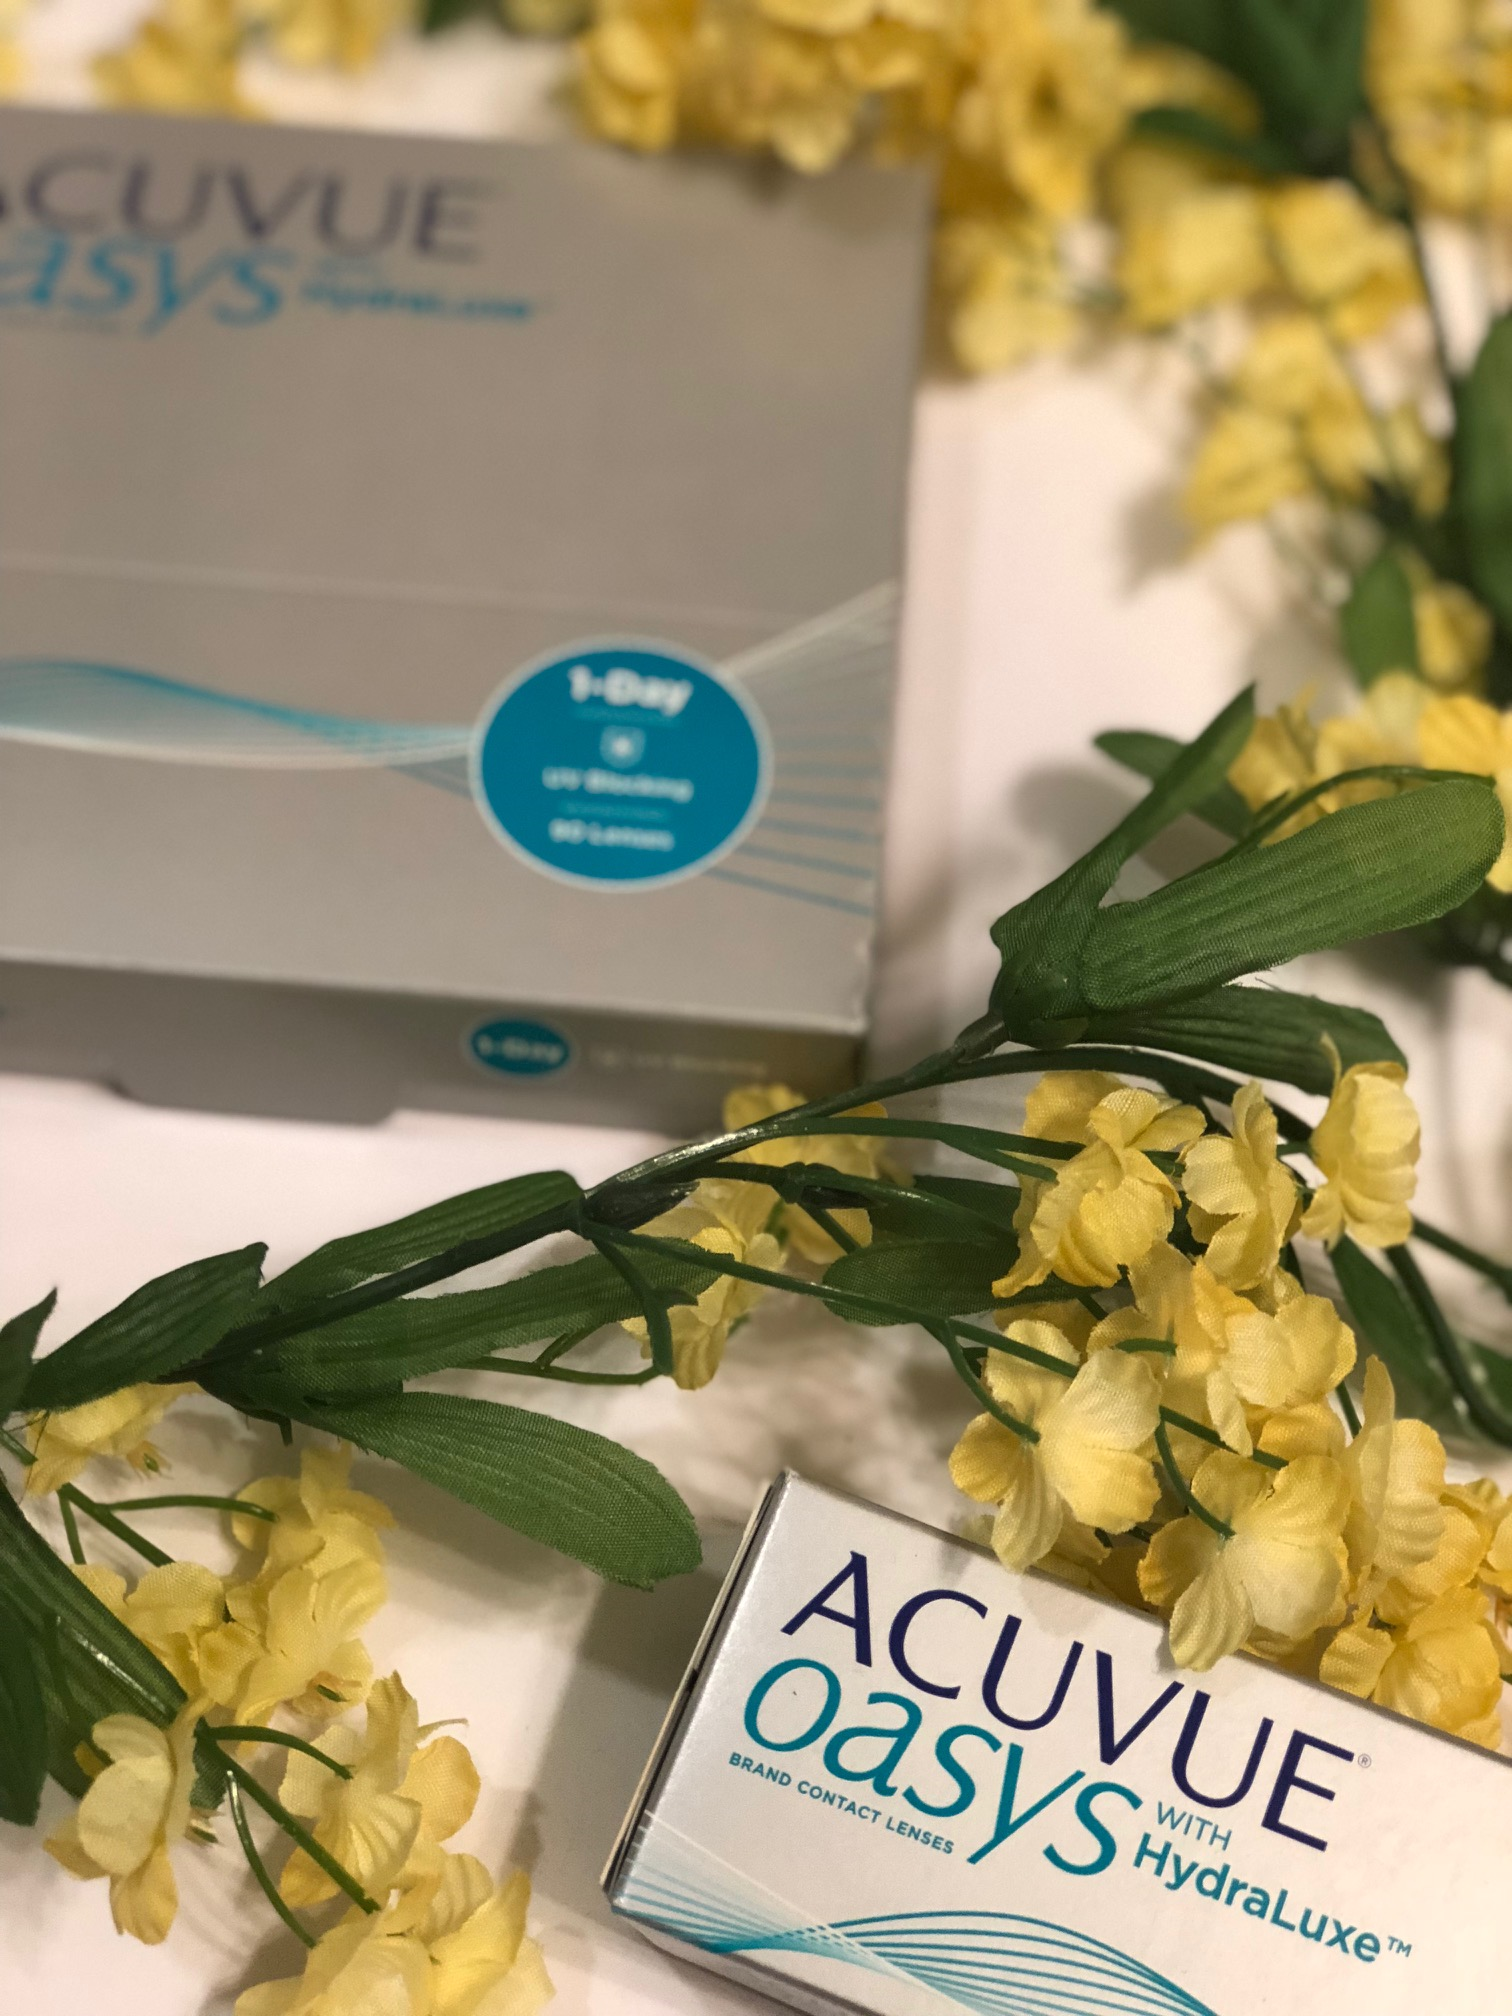 My first 2018 life changer with acuvue styld grace my first 2018 life changer with acuvue nvjuhfo Image collections